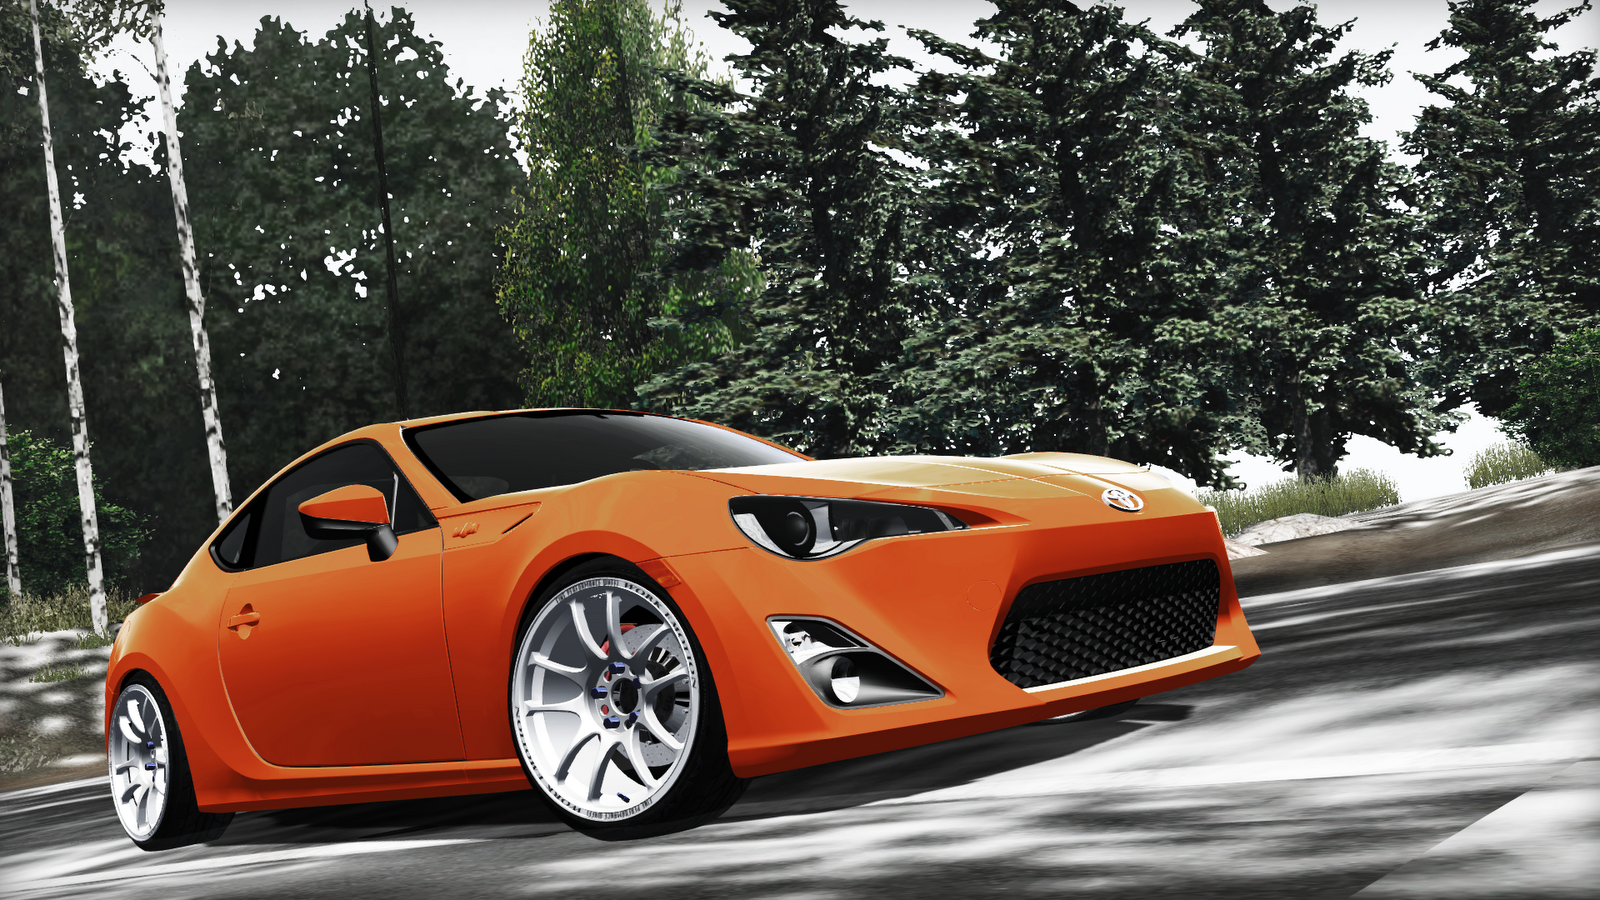 Illegal street mod toyota gt86 for Toyota 86 exterior mods